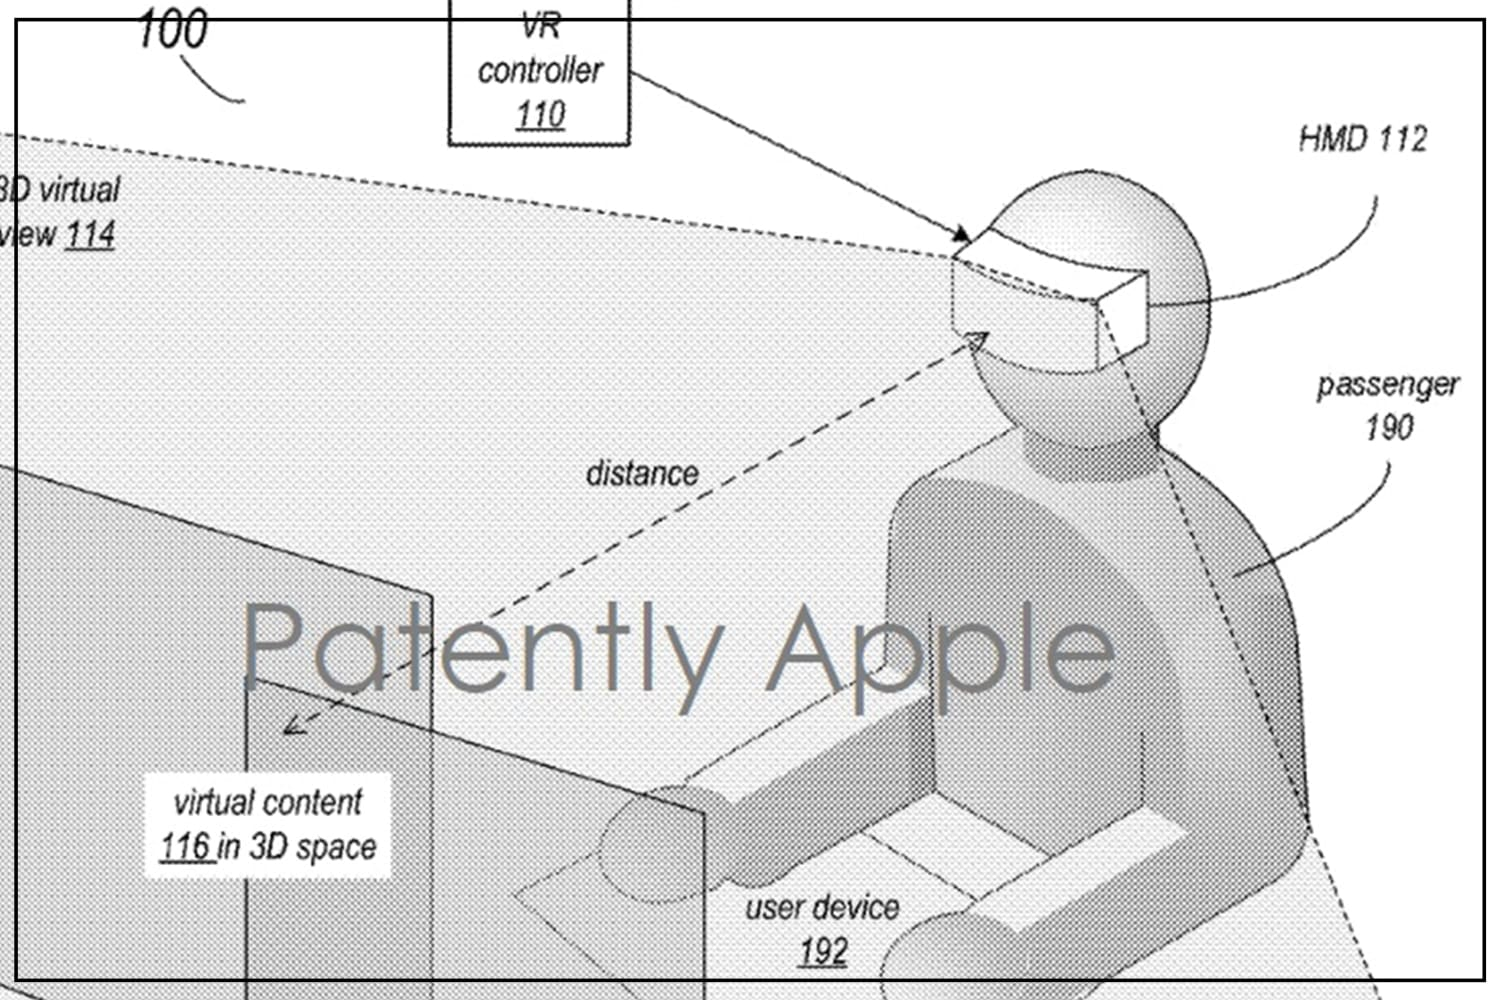 apple-s-new-patents-hint-at-hmd-and-apple-glasses-20201103-2